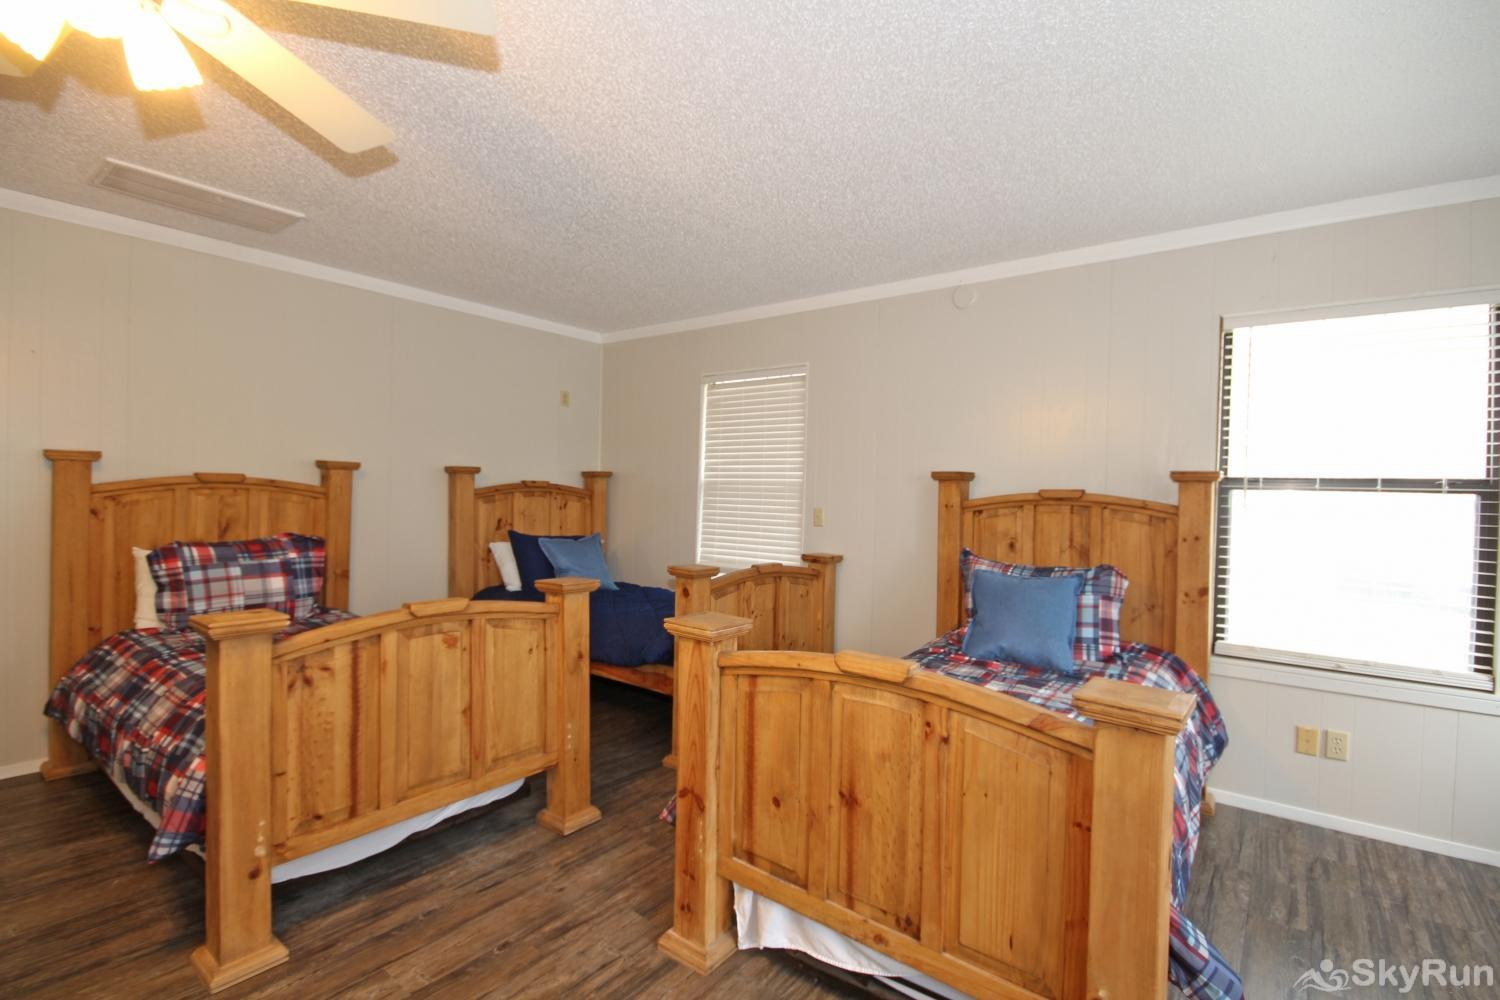 HONDO'S RIVER HAUS Fourth large bedroom with three twin beds